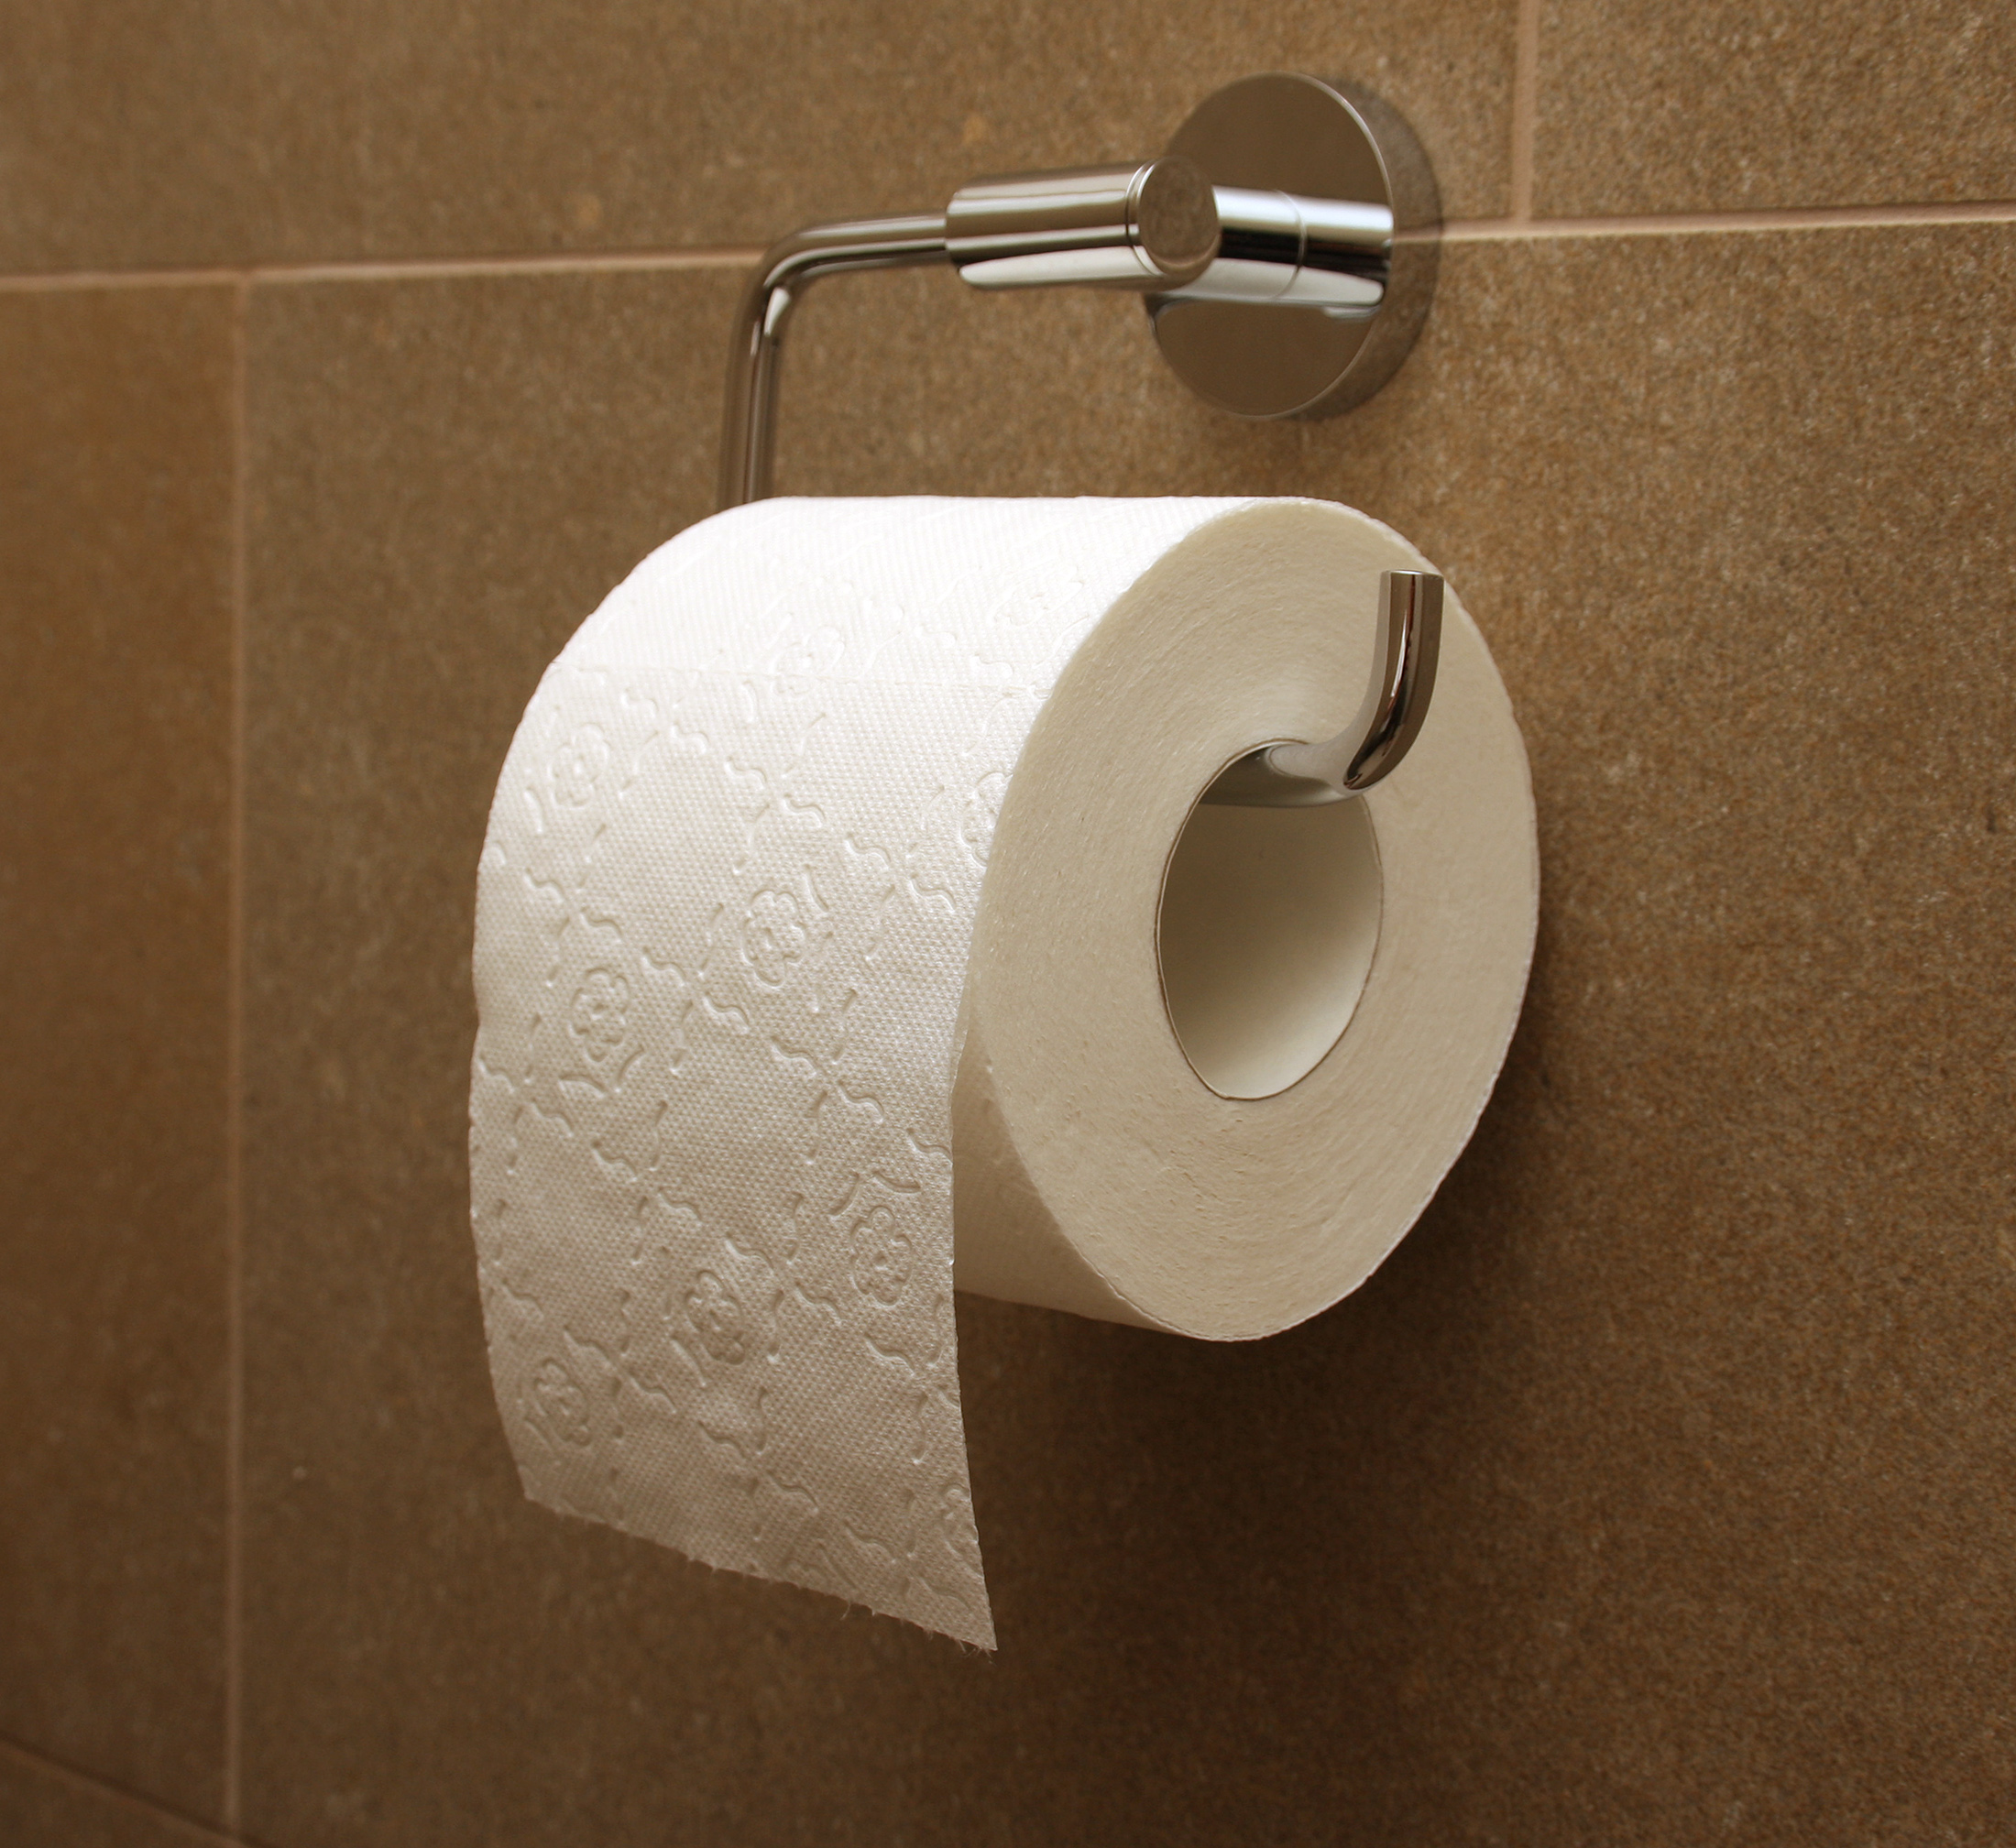 Toilet_paper_orientation_over.jpg